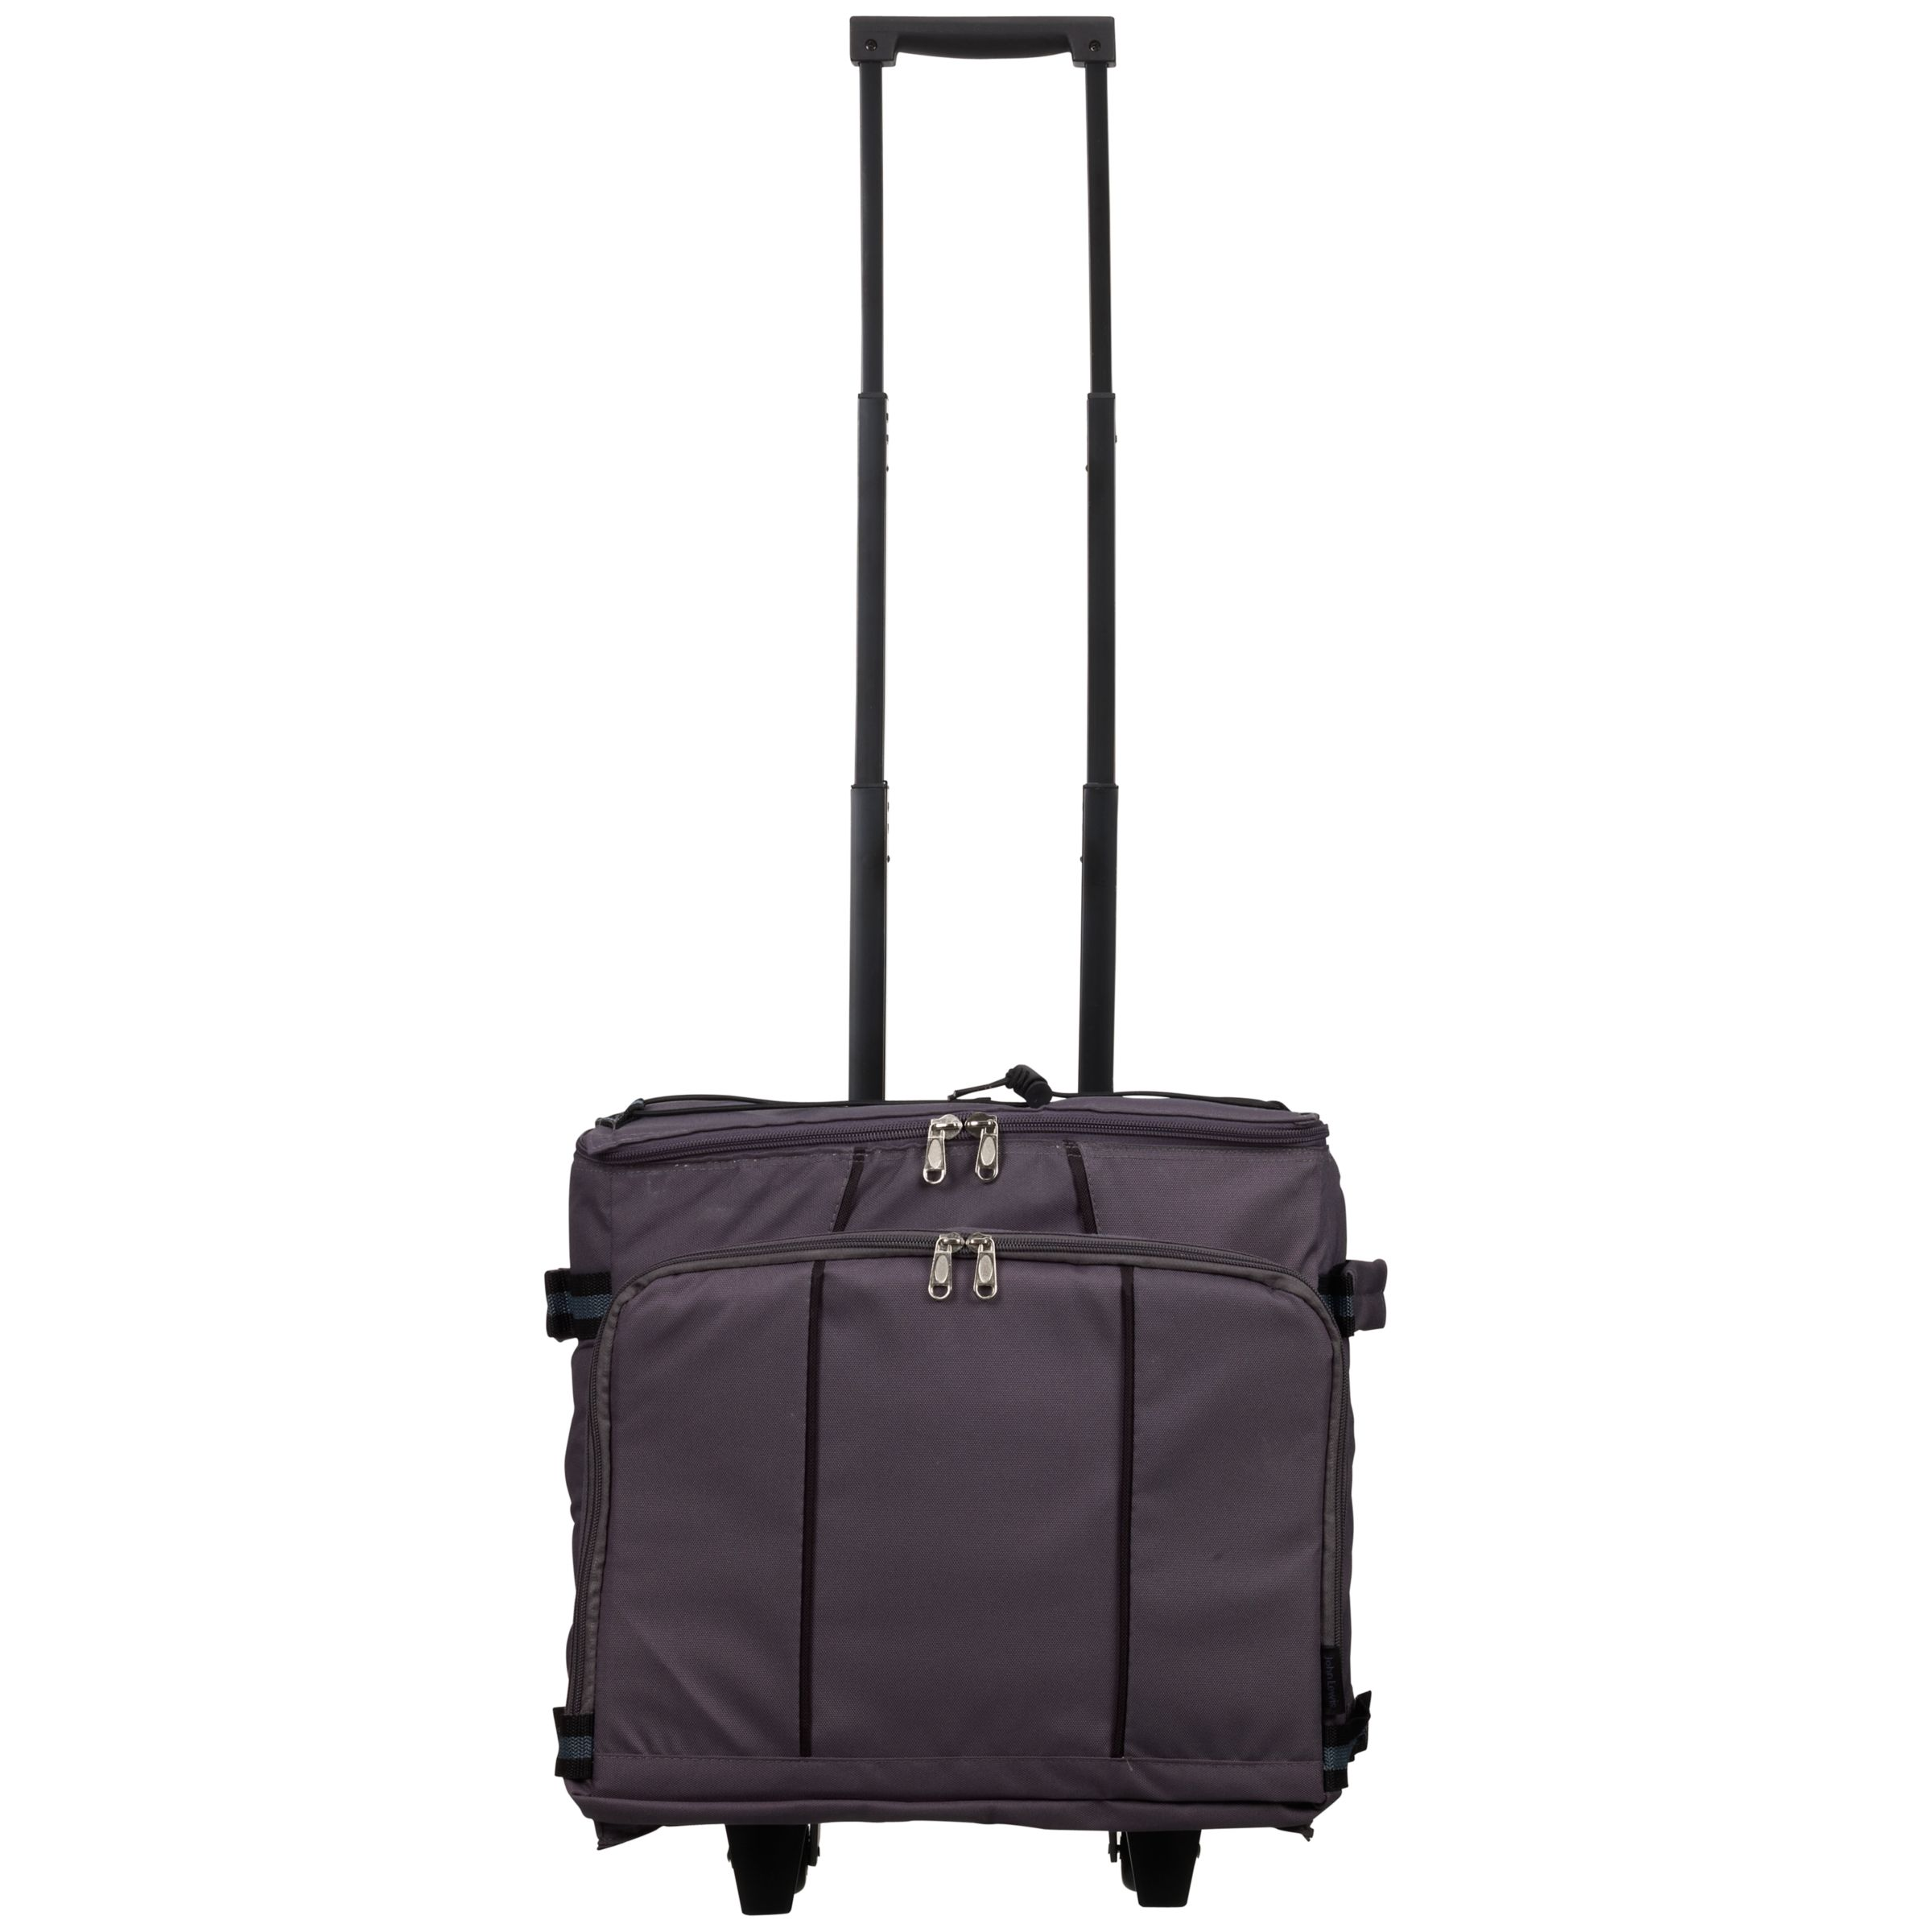 John Lewis Coolbag Trolley with Wheels, 30L, Charcoal